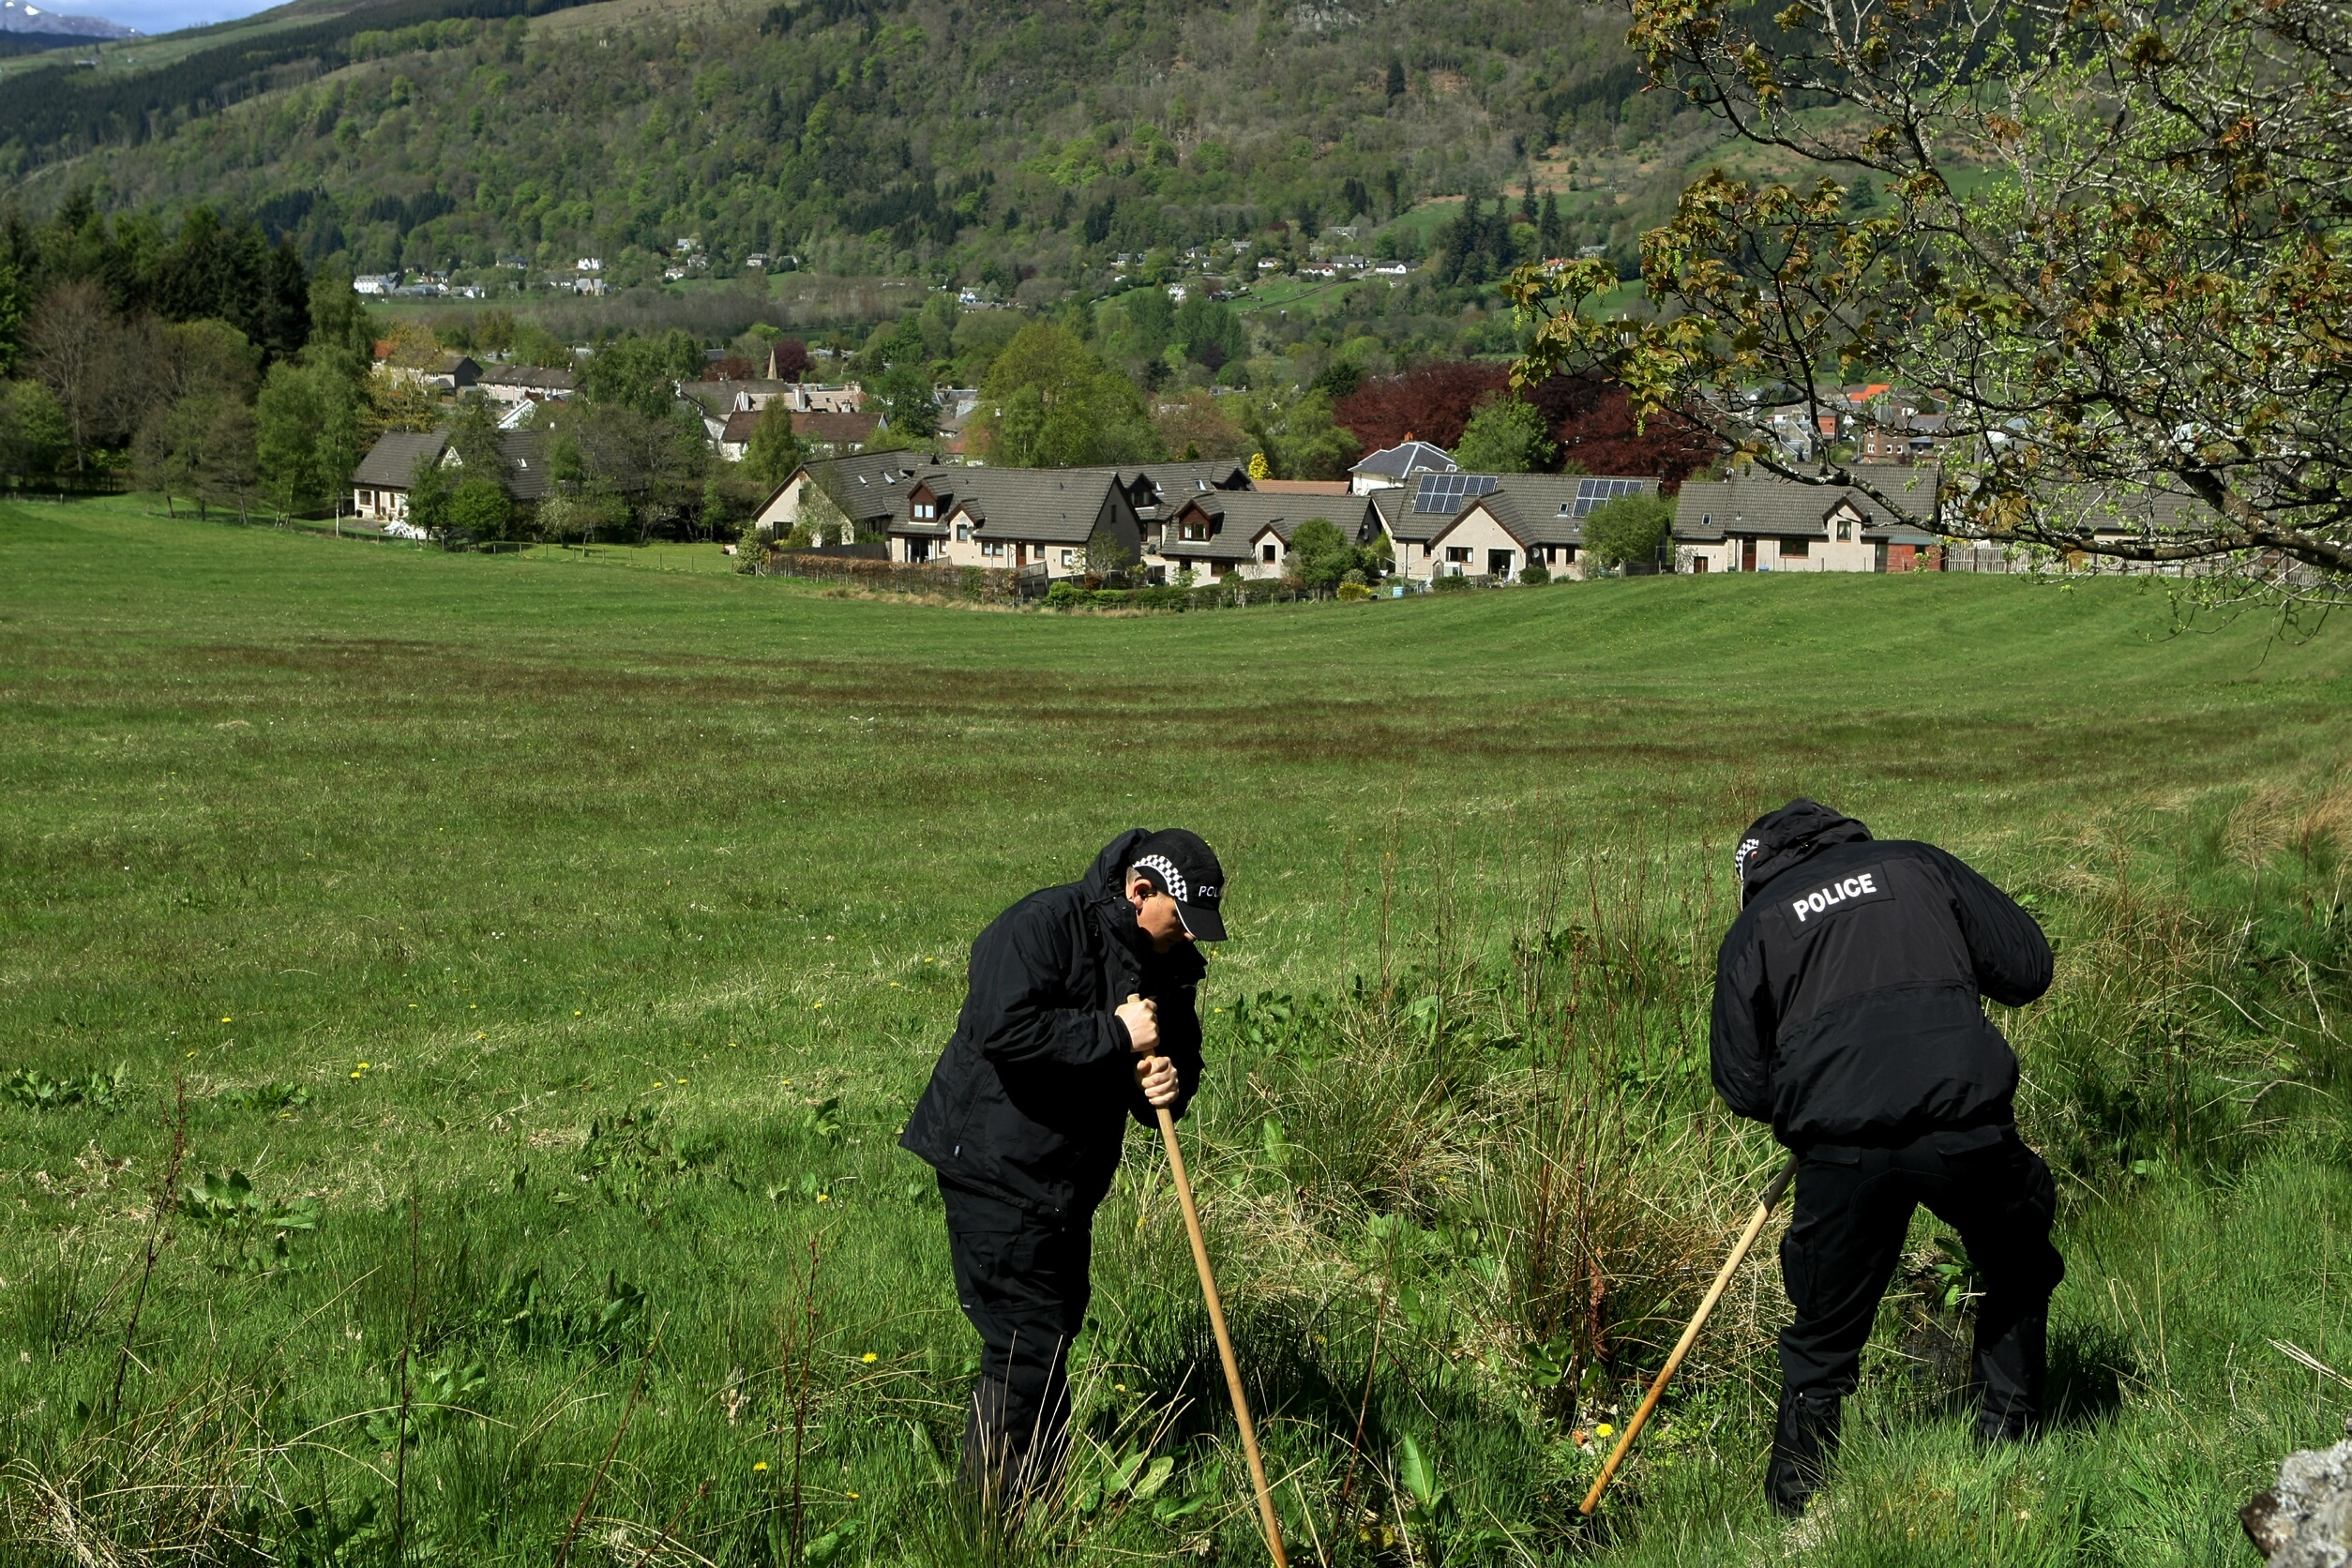 COURIER, DOUGIE NICOLSON, 19/05/15, NEWS. SEARCH FOR SUSAN McLEAN, ABERFELDY. Pic shows Police searching fields above Aberfeldy today, Tuesday 19th May 2015. Story by Perth office.